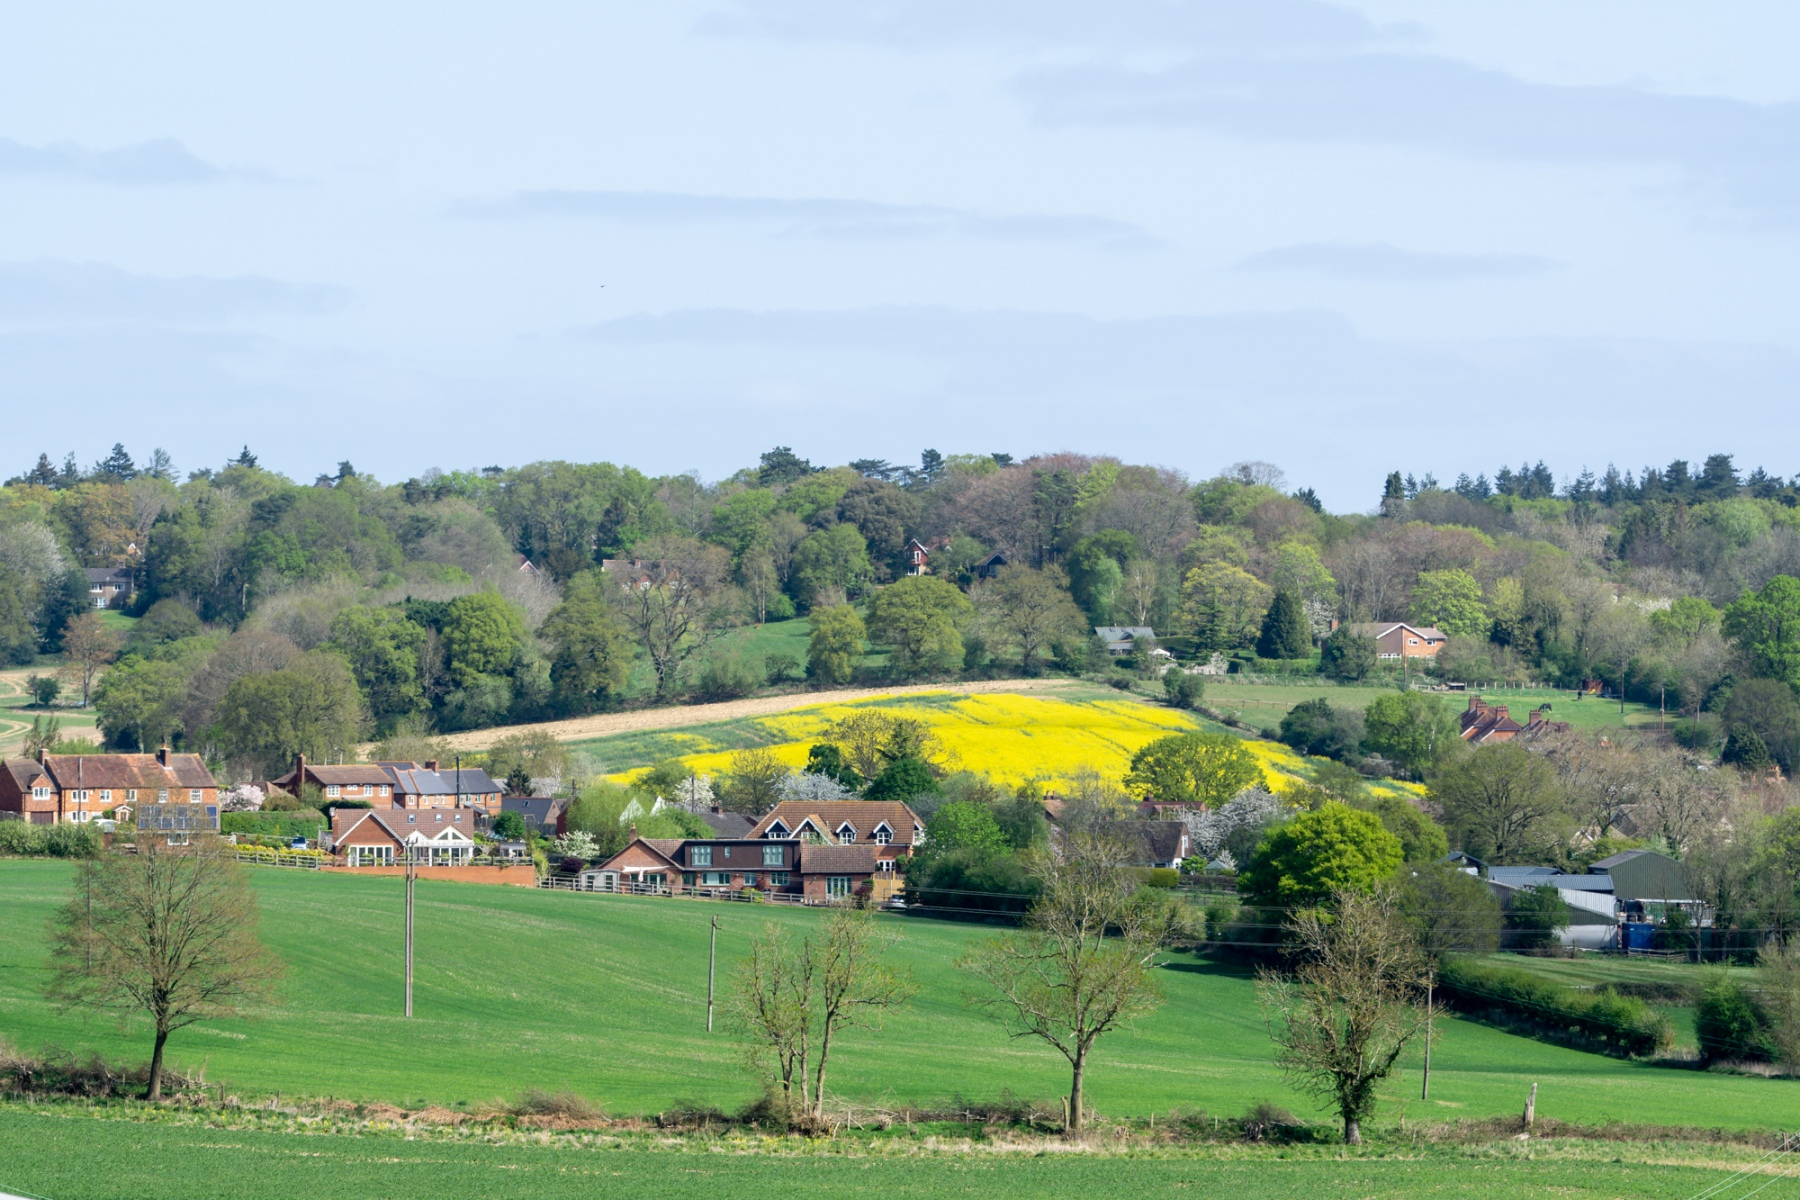 A wide vista with green rolling countryside. Ashmore Green houses sit in front of a yellow Rape Seed field.